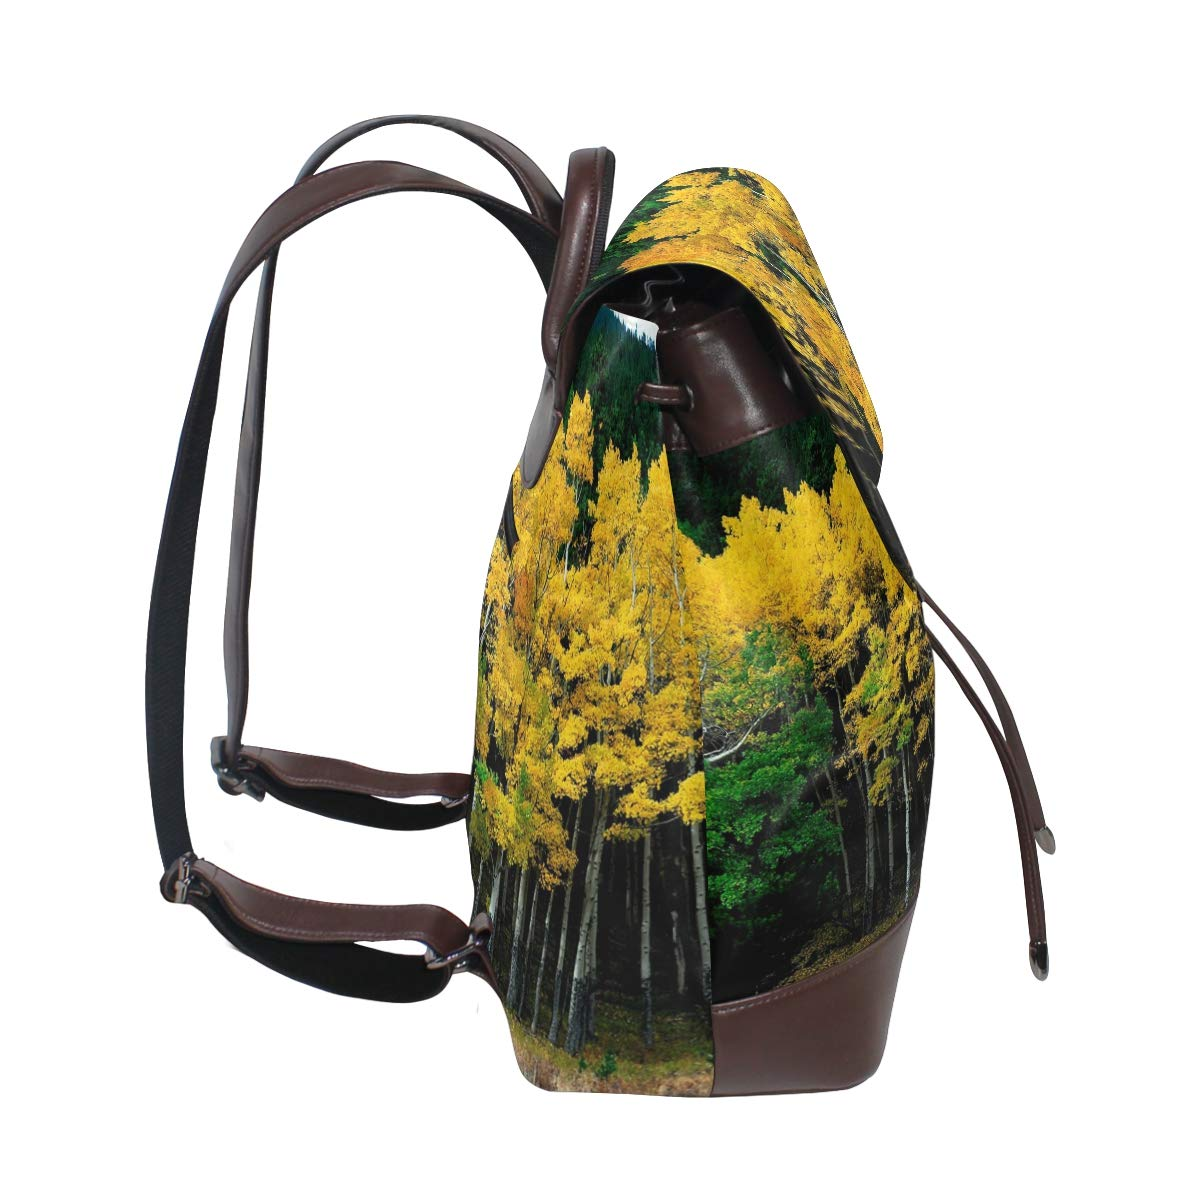 PU Leather Shoulder Bag,Autumn Yellow Green Trees Backpack,Portable Travel School Rucksack,Satchel with Top Handle